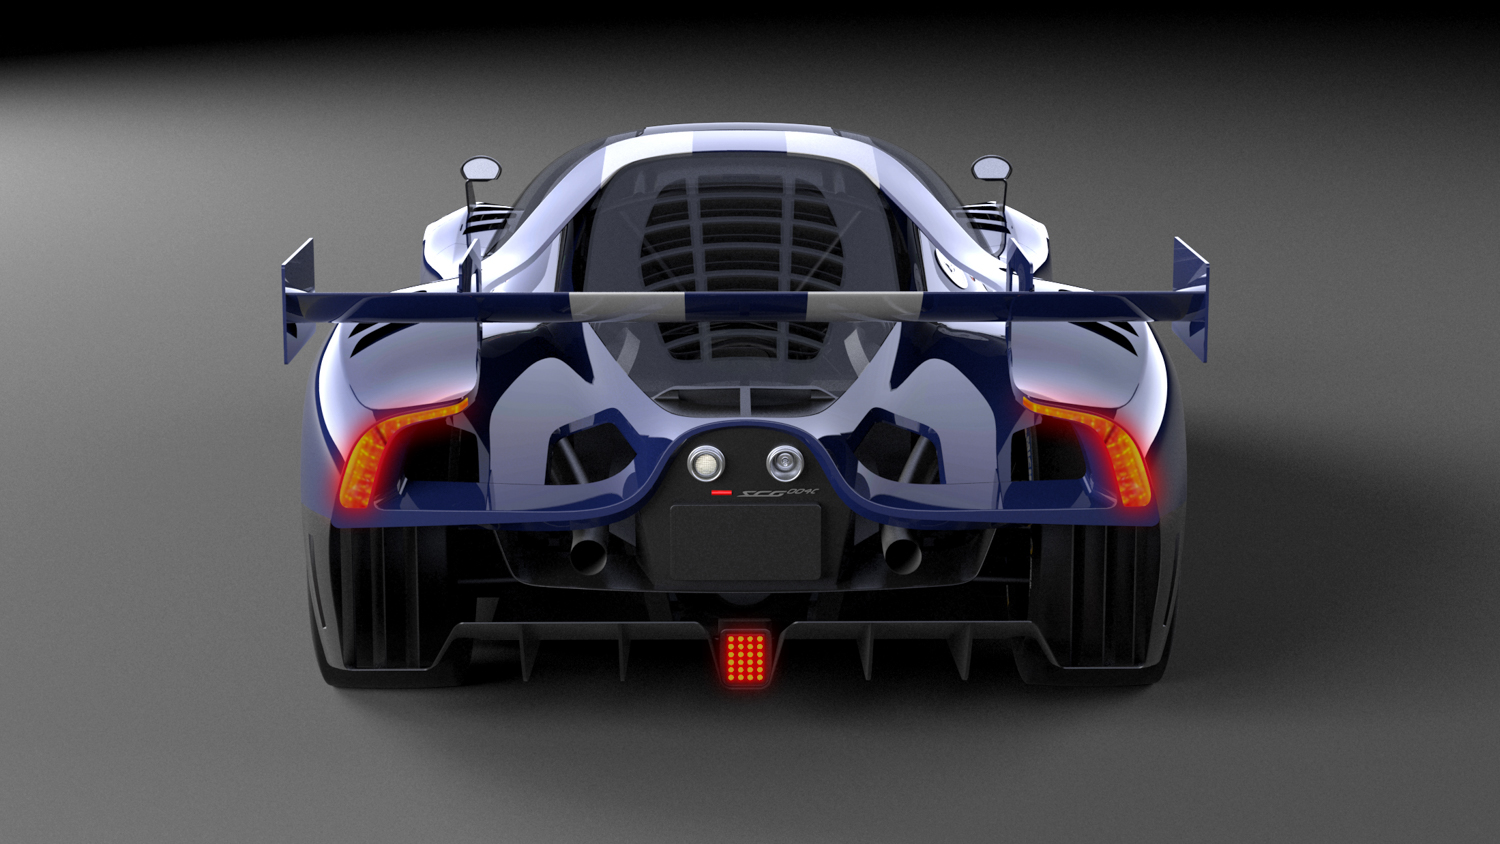 scg004 tail wing